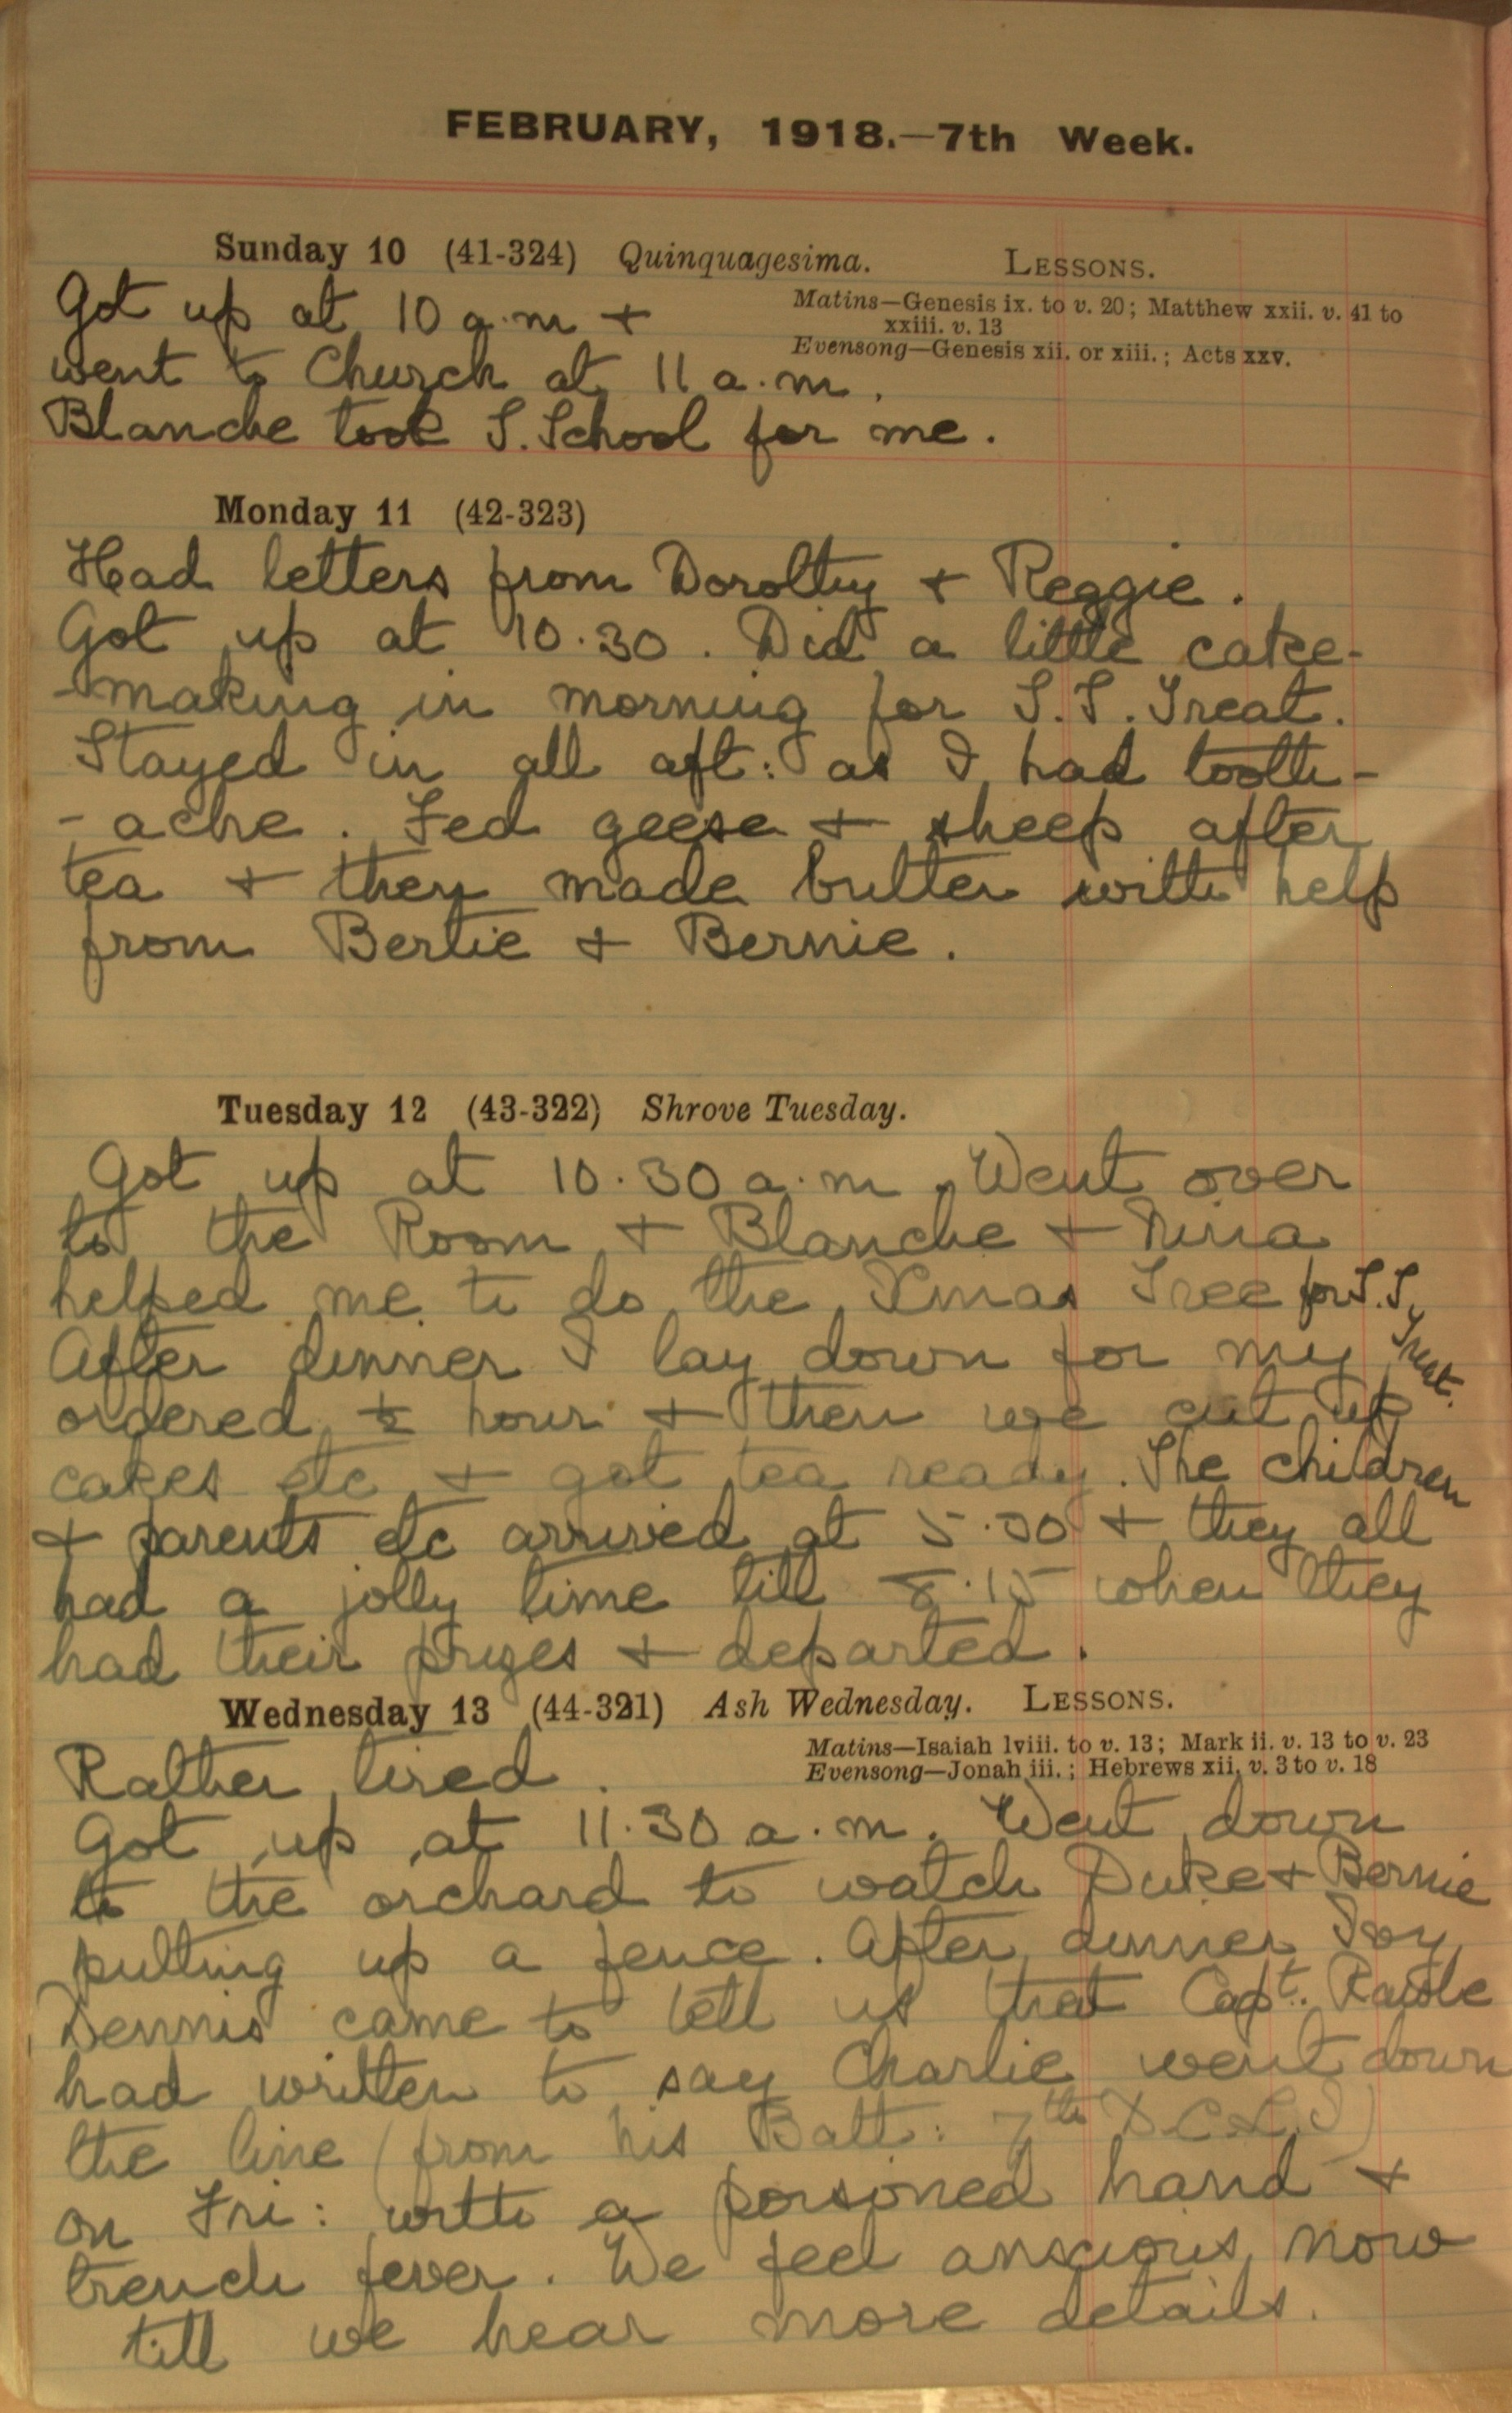 Entry: 13th February 1918: Translation: ' … Dennis came to tell us that Capt[ain] Rawle had written to say Charlie went down the line (from his Batt[alion] 7th DCLI) on Fri[day]: with a poisoned hand + trench fever. We feel anxious now till we hear more details.'